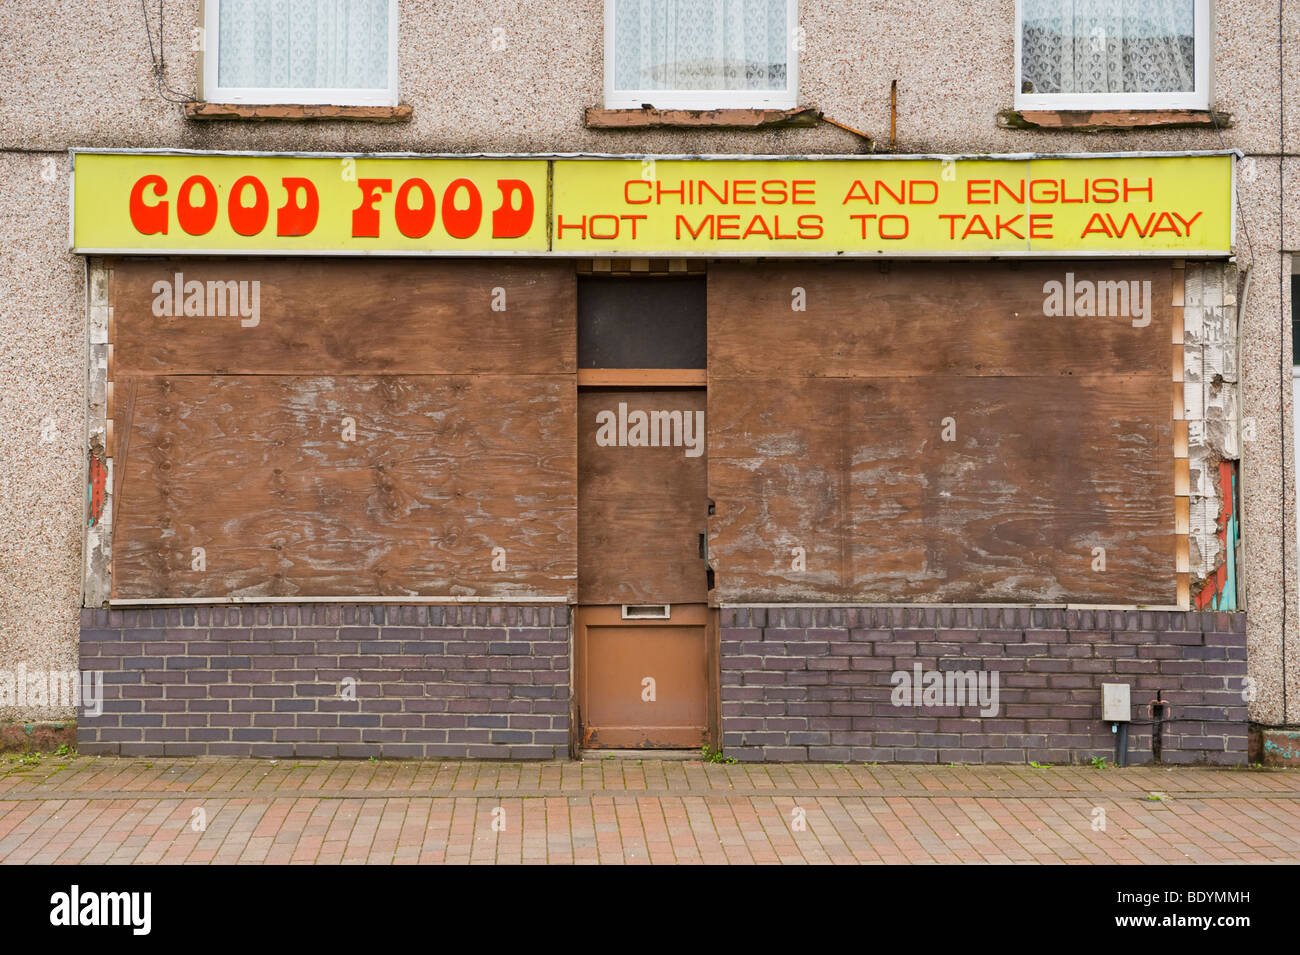 Chinese Takeaway Stock Photos & Chinese Takeaway Stock Images - Alamy